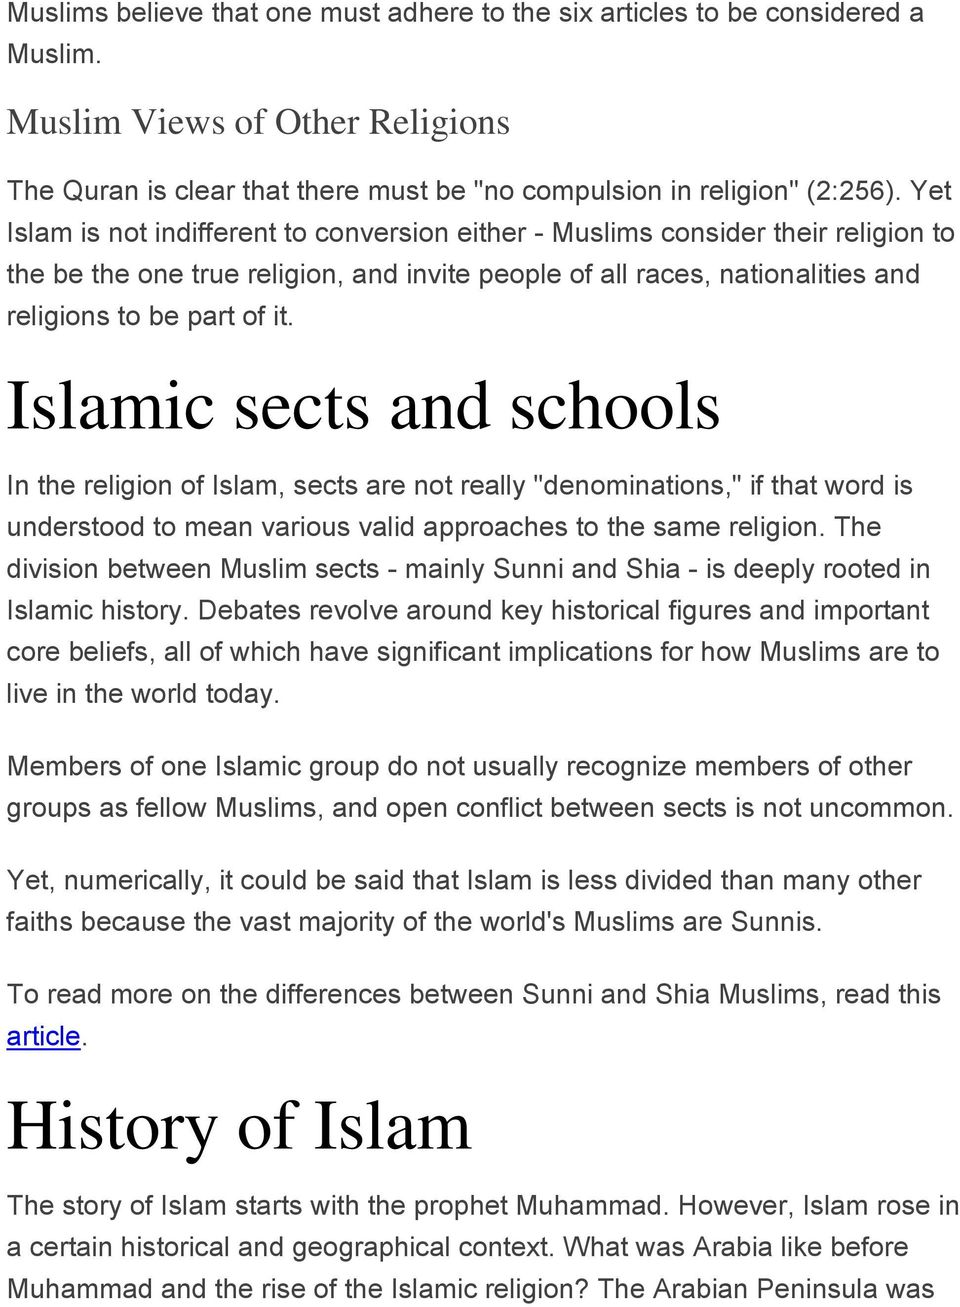 "Islamic sects and schools In the religion of Islam, sects are not really ""denominations,"" if that word is understood to mean various valid approaches to the same religion."